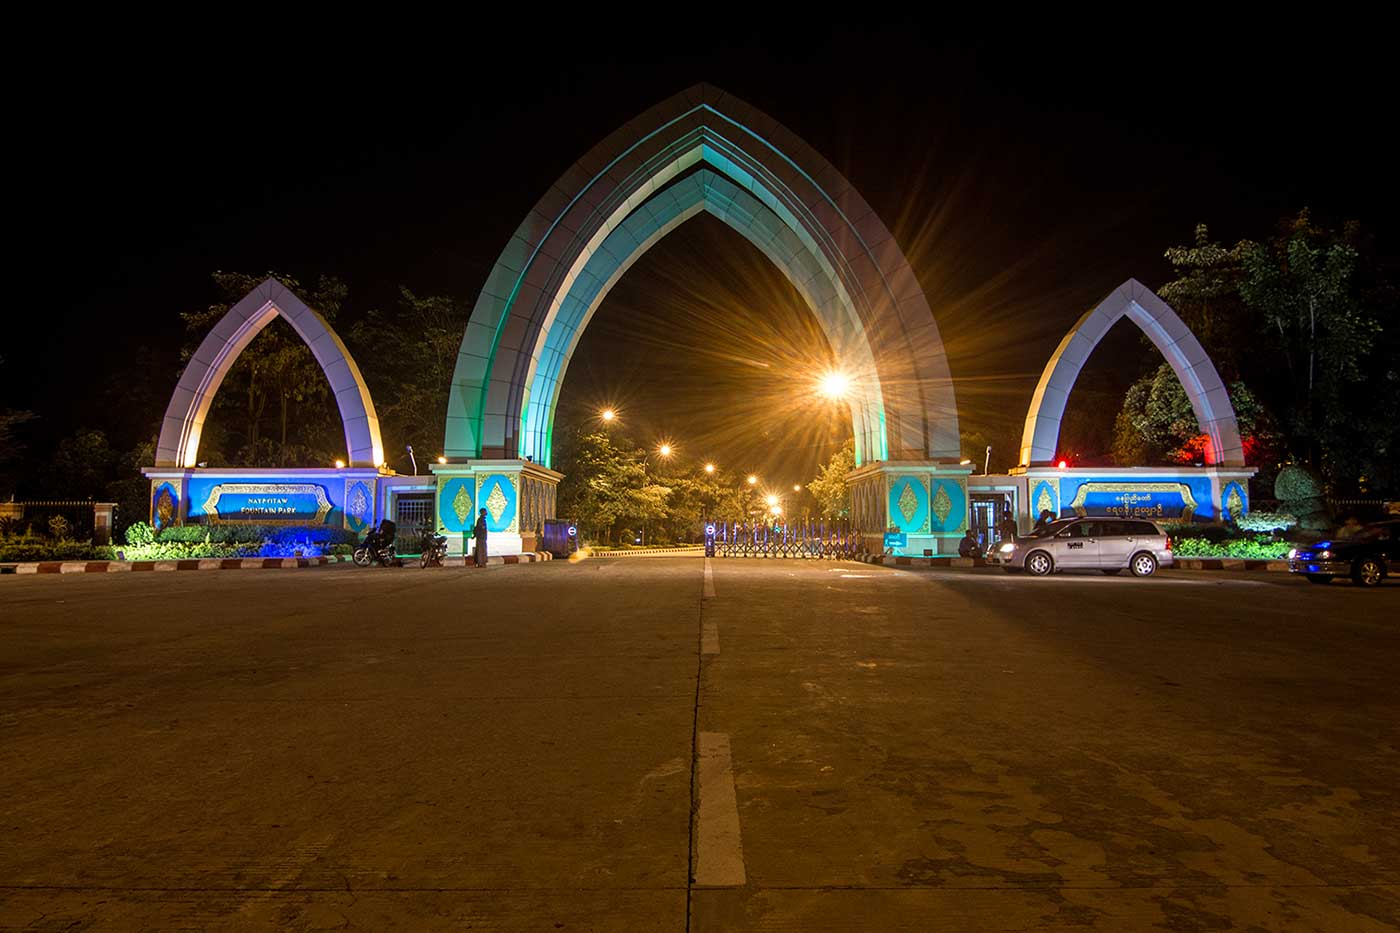 The illuminated entrance to the Fountain Park in Naypyidaw, Myanmar.